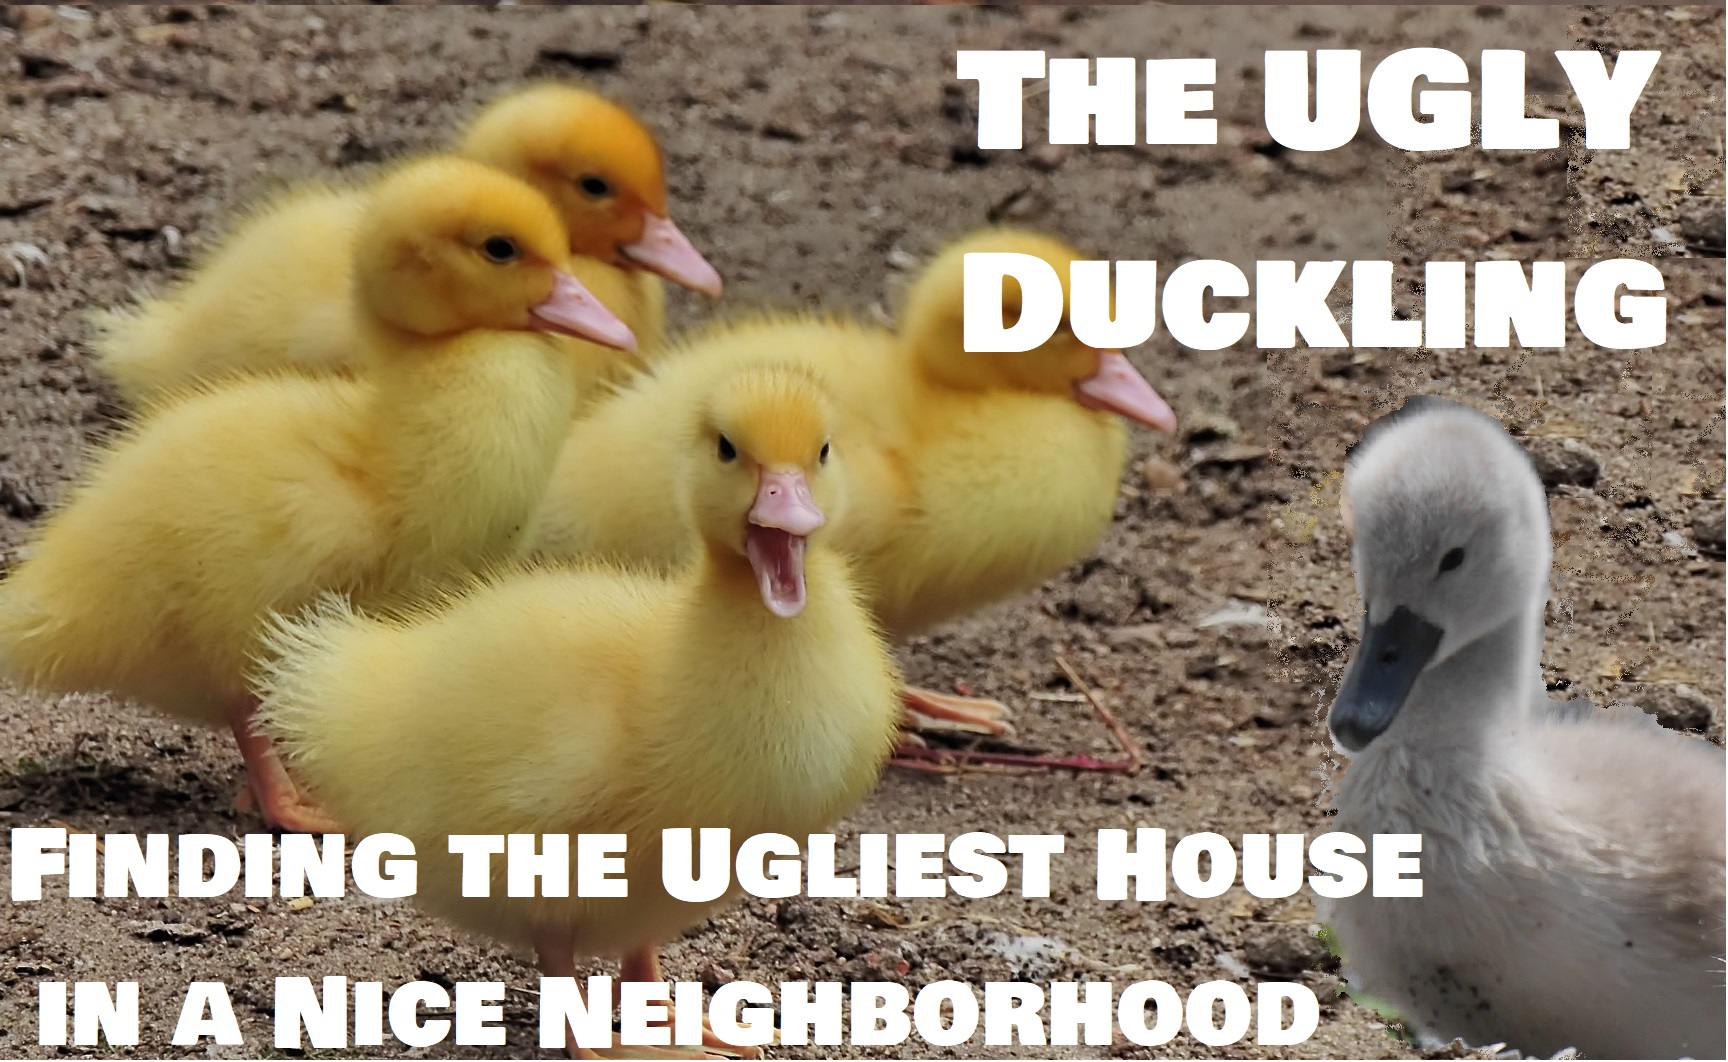 The Ugly Duckling: Finding the Ugliest House in a Nice Neighborhood